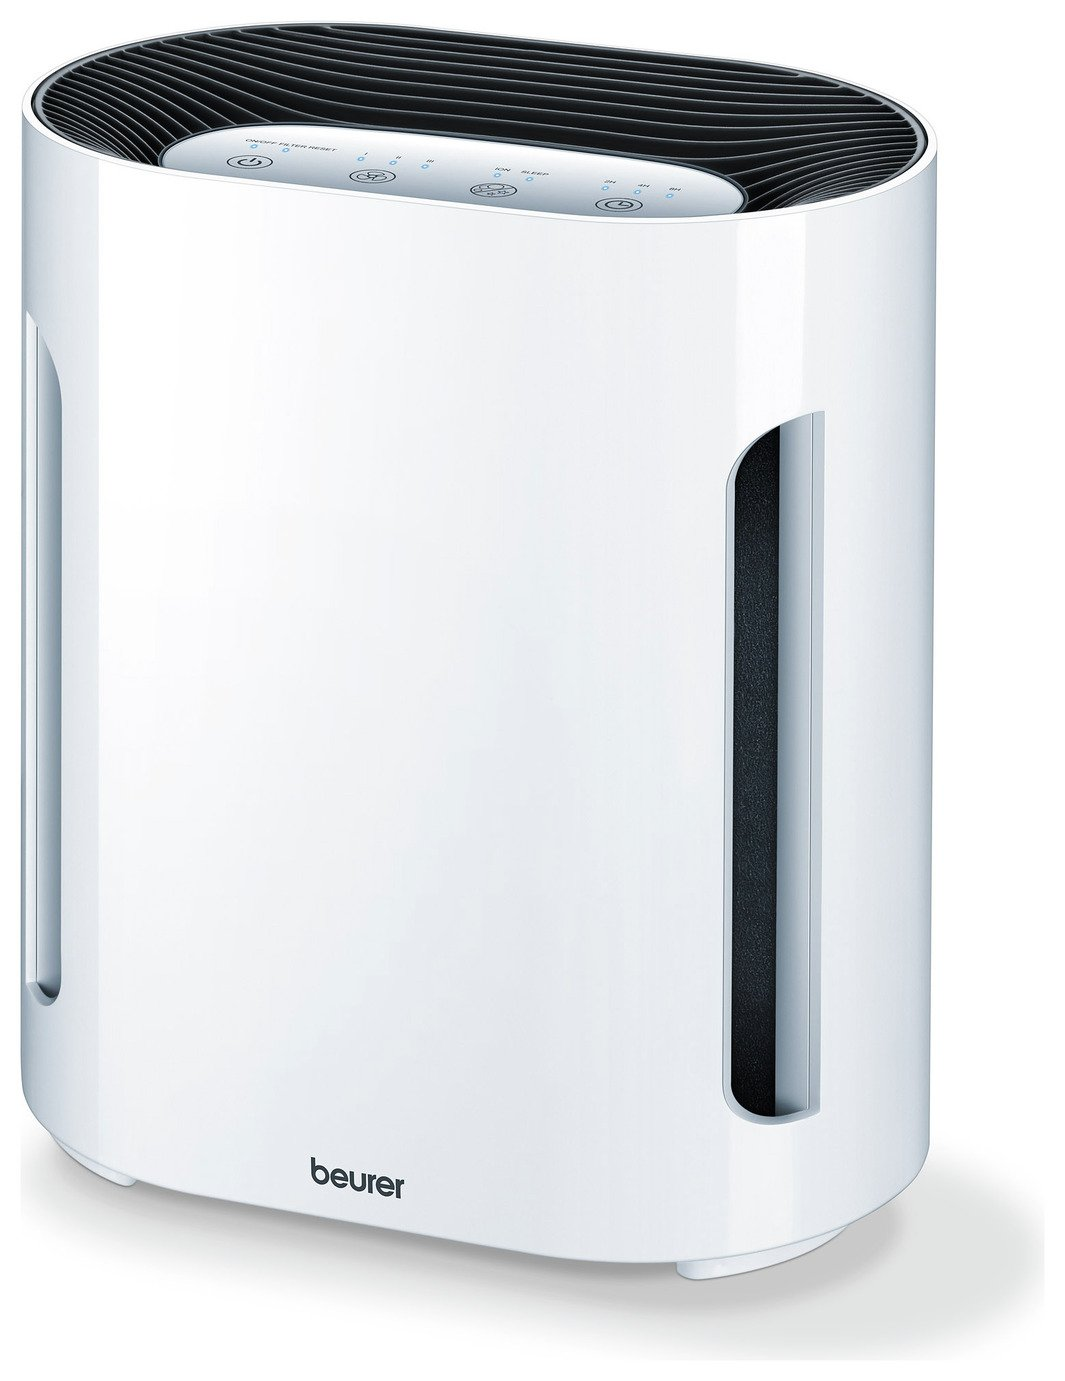 Image of Beurer LR200 Compact Air Cleaner